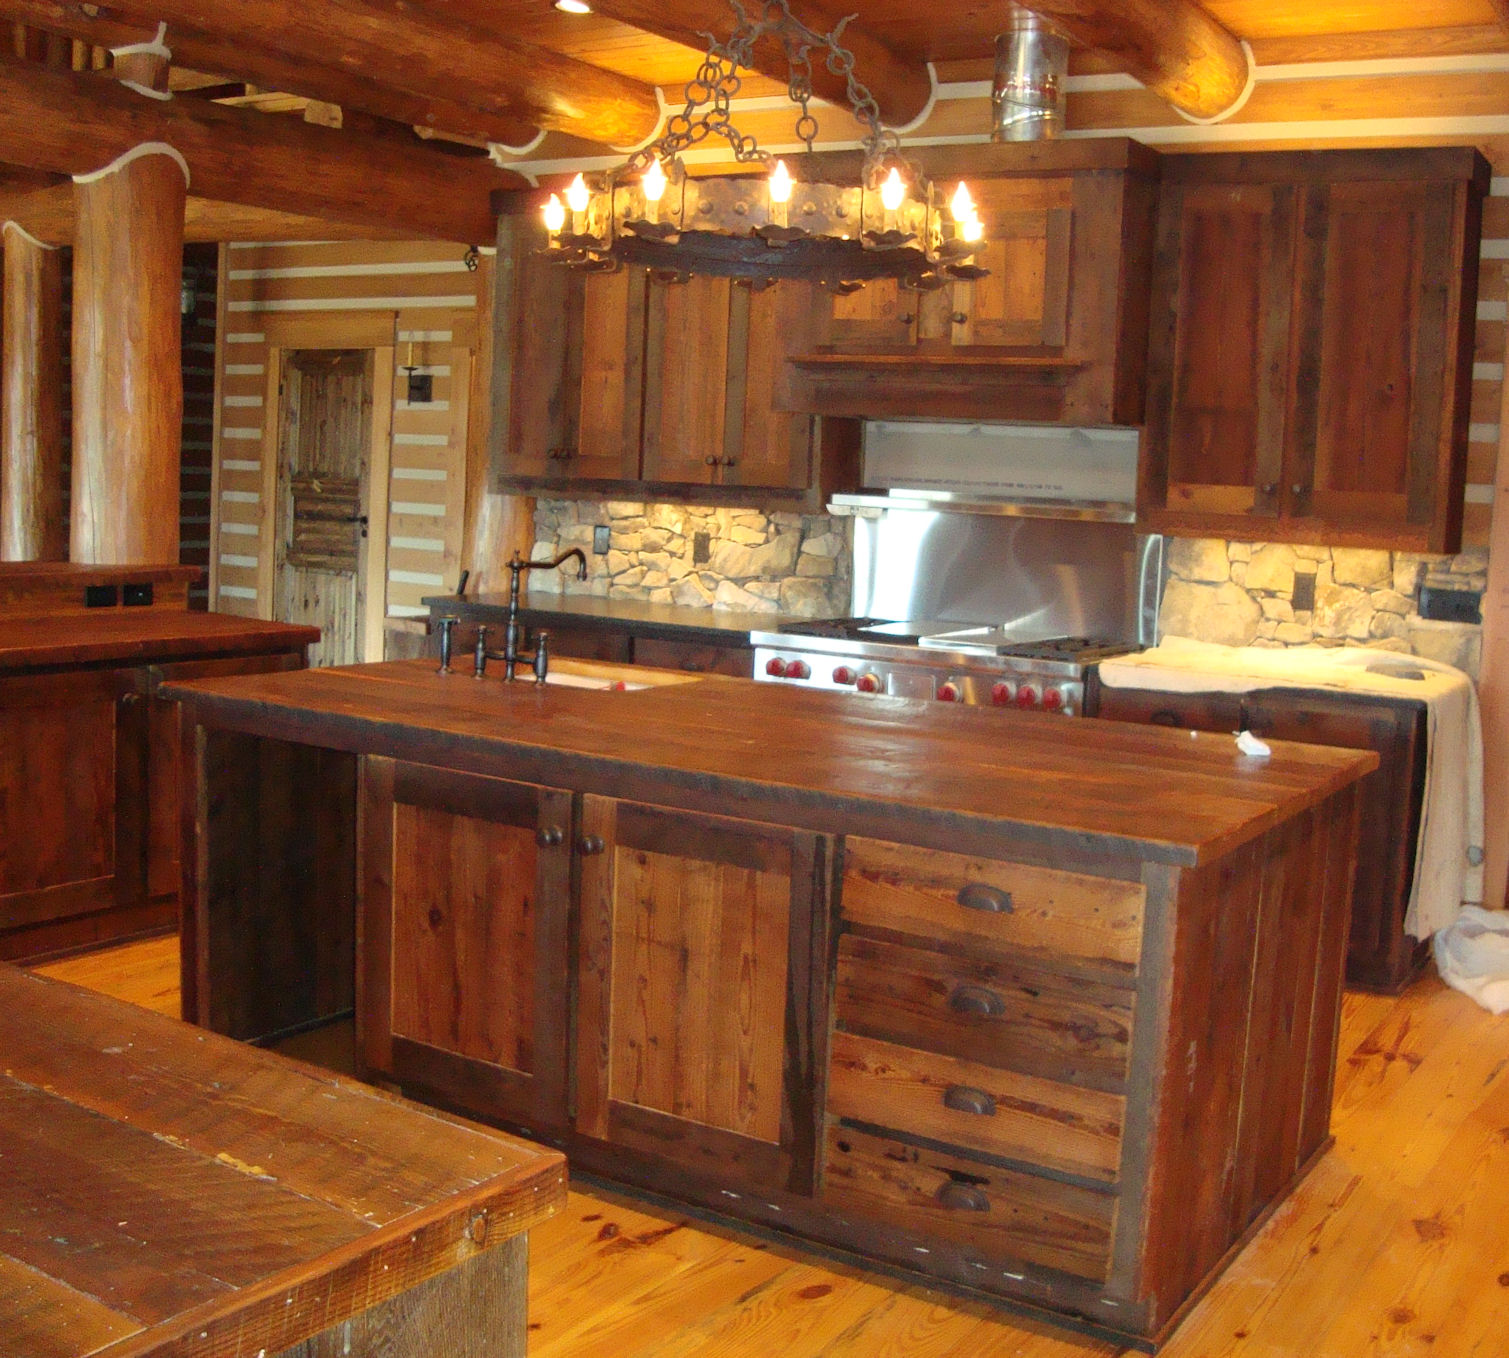 western kitchen decor small eat in table home information tips remodeling furniture design and